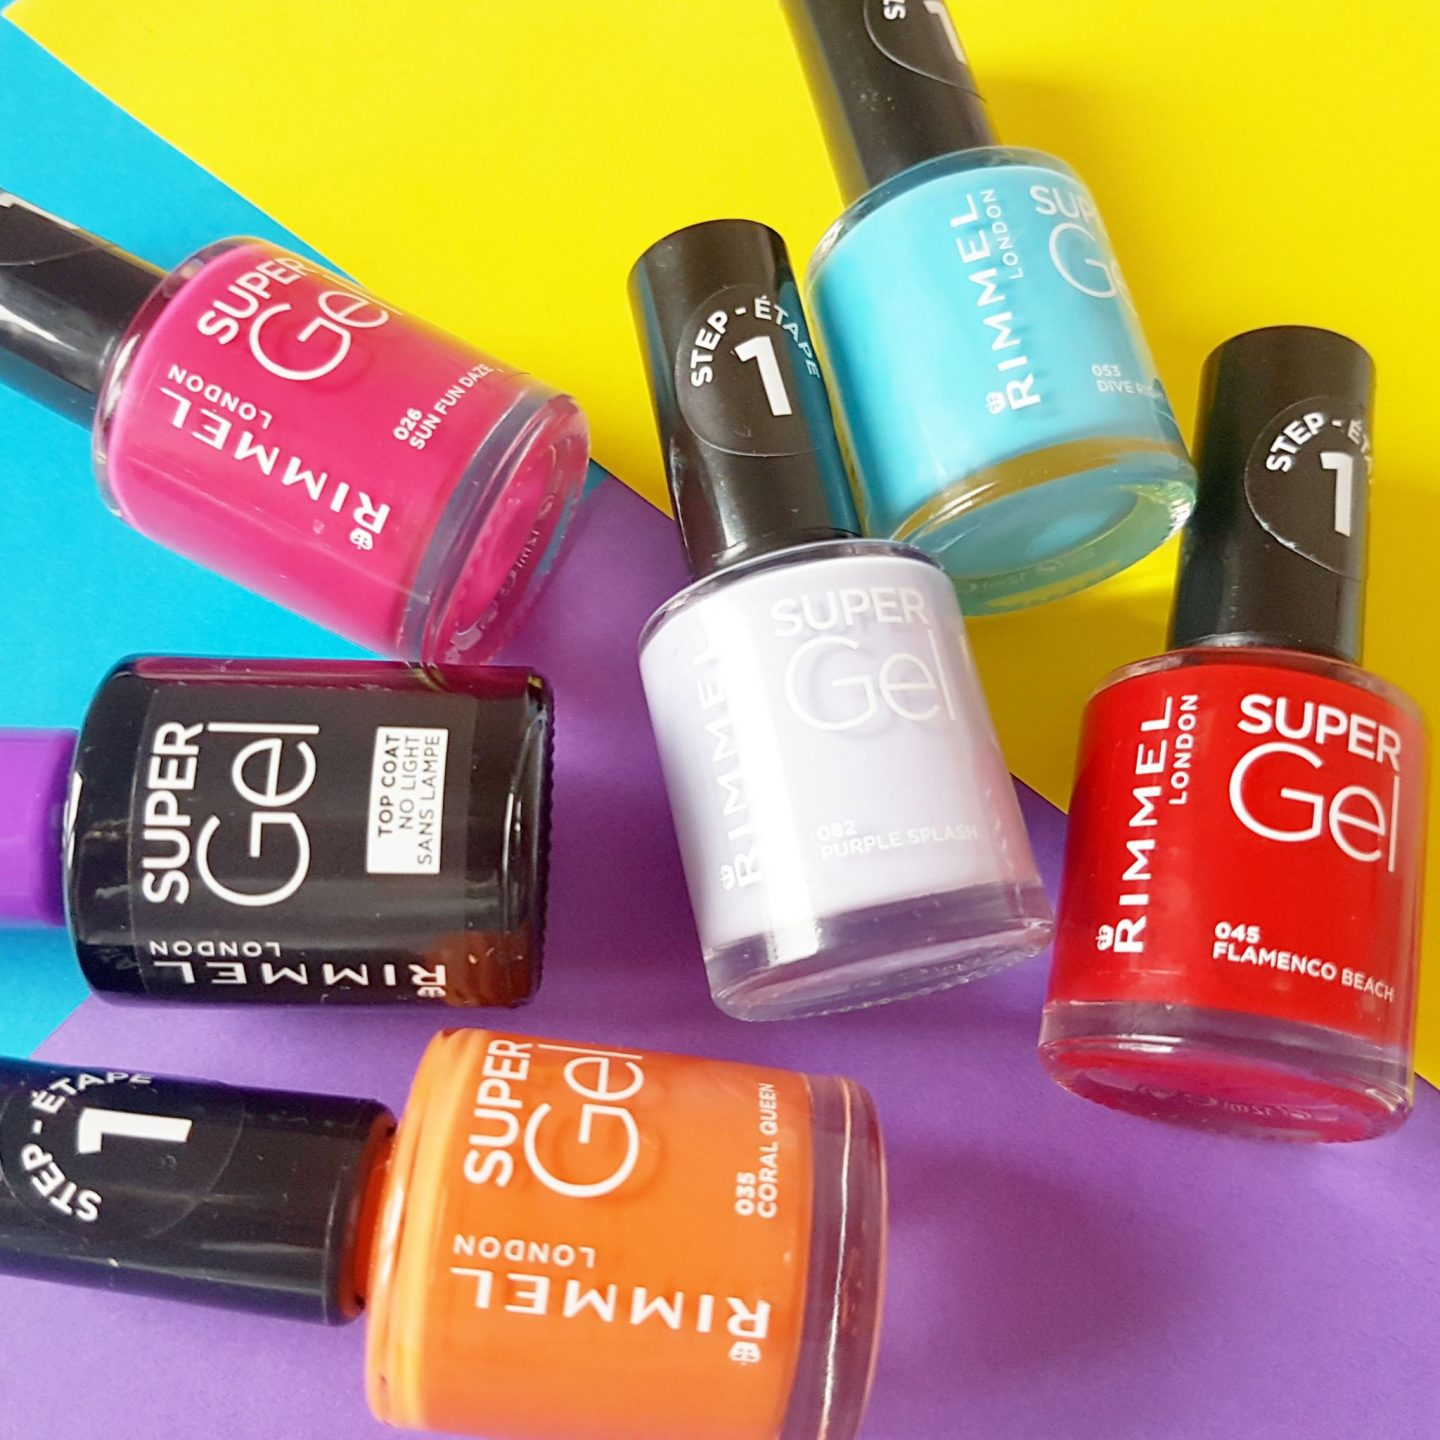 Rimmel London Super Gel Nail Polish | Two-Step Gel System For Salon-Style Nails #GelPower